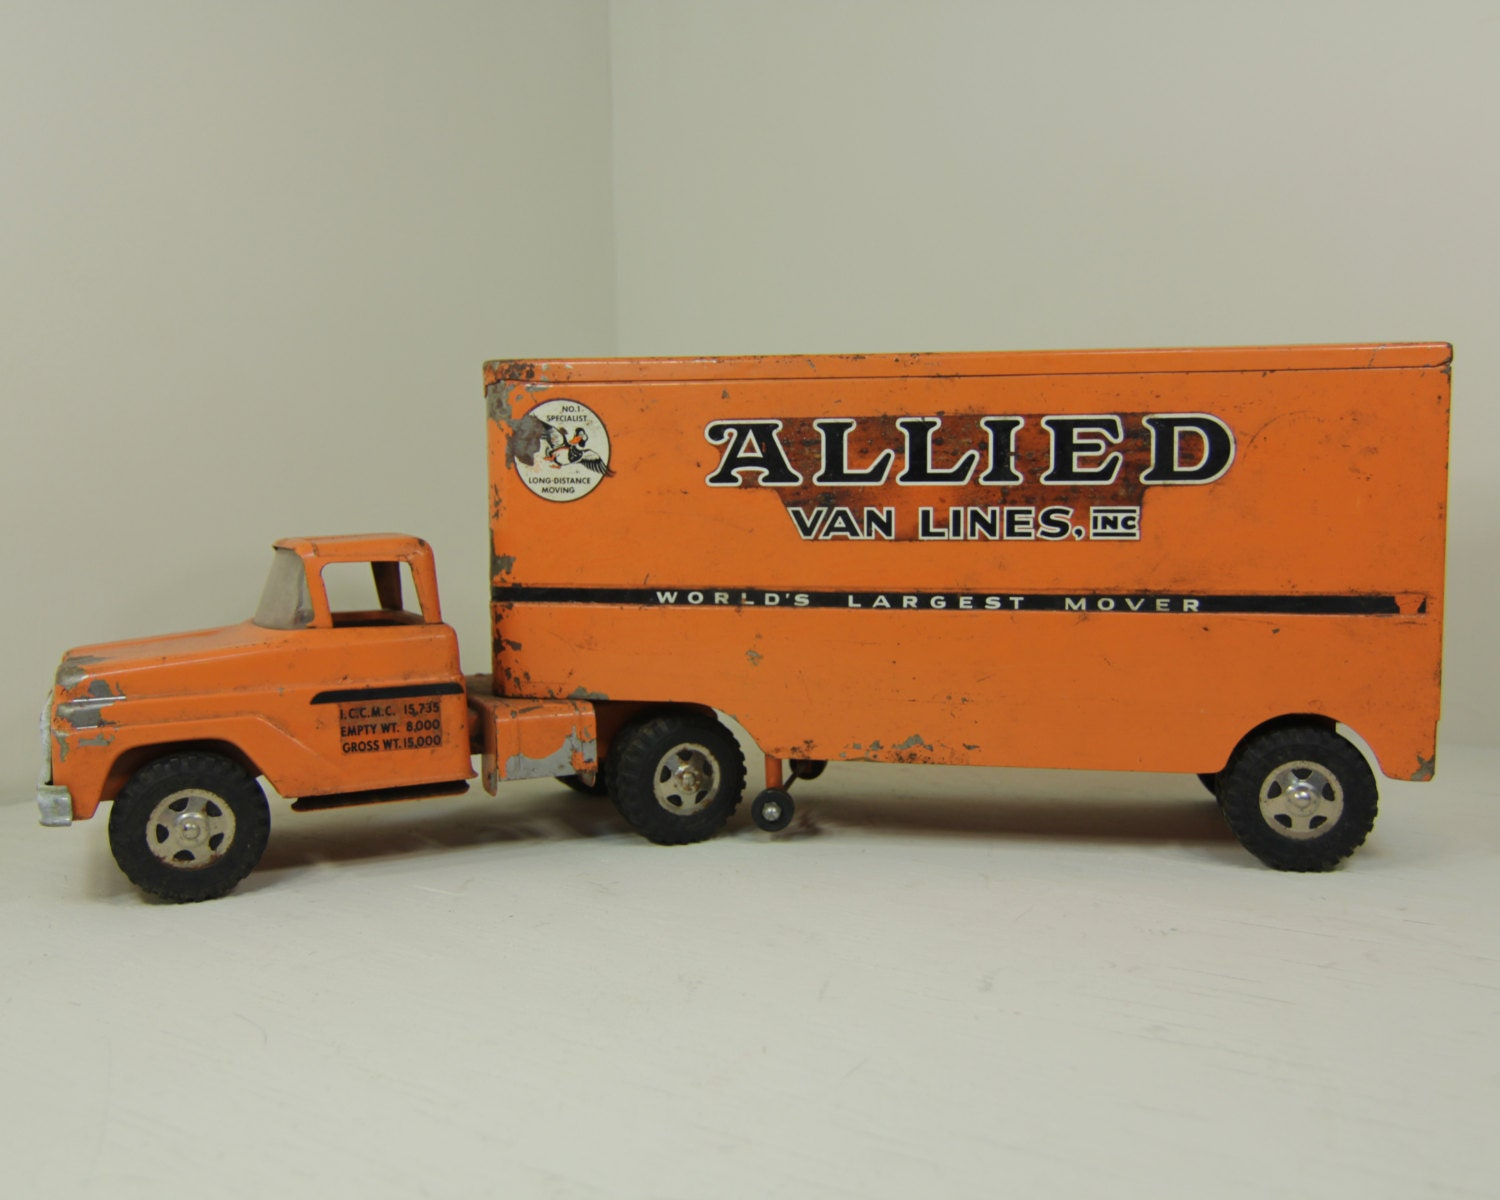 Toy Tractor Trailer Trucks : Metal toy tractor trailer trucks wow